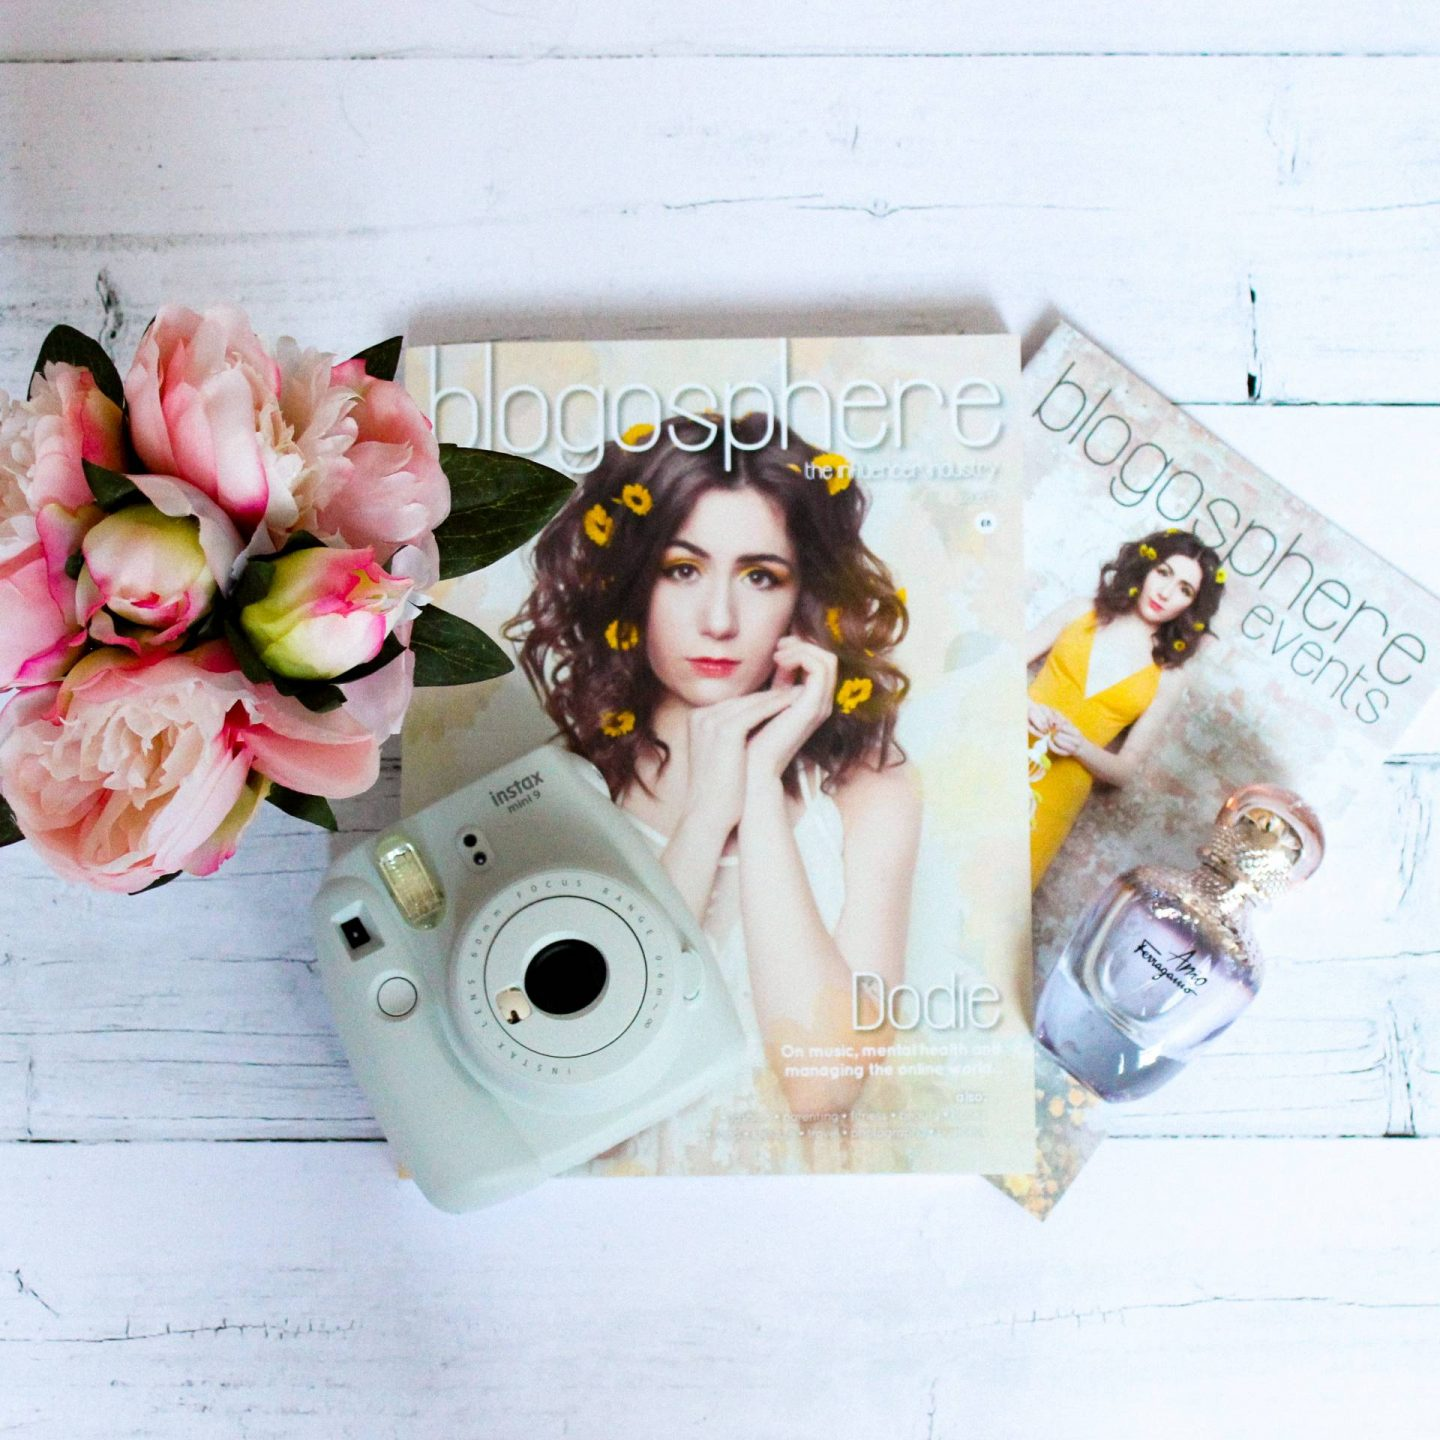 Blogosphere dodie yellow cover star